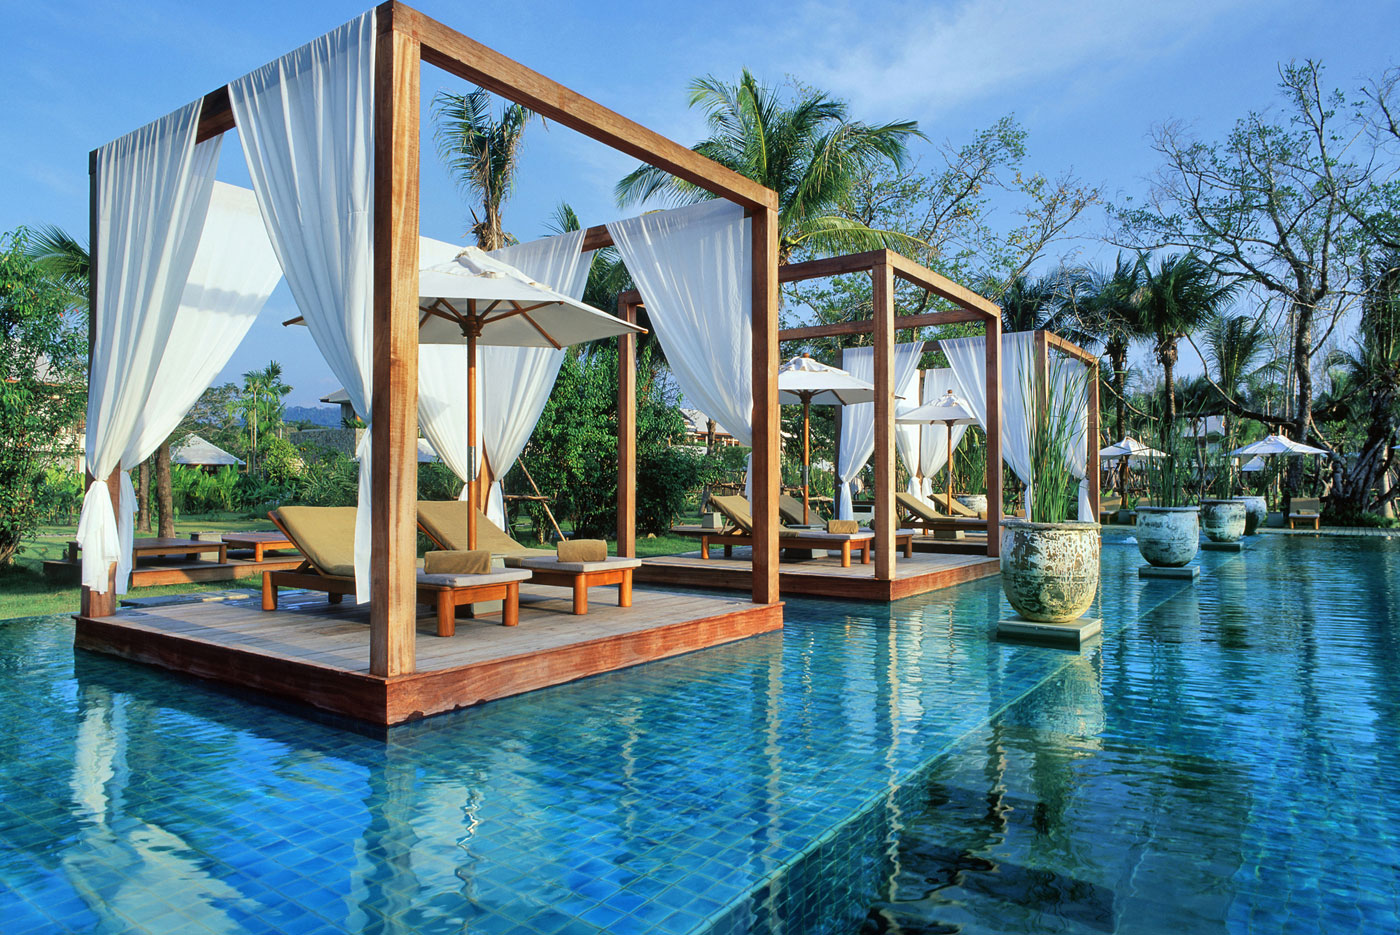 Top 10 Hotel Pools in the World